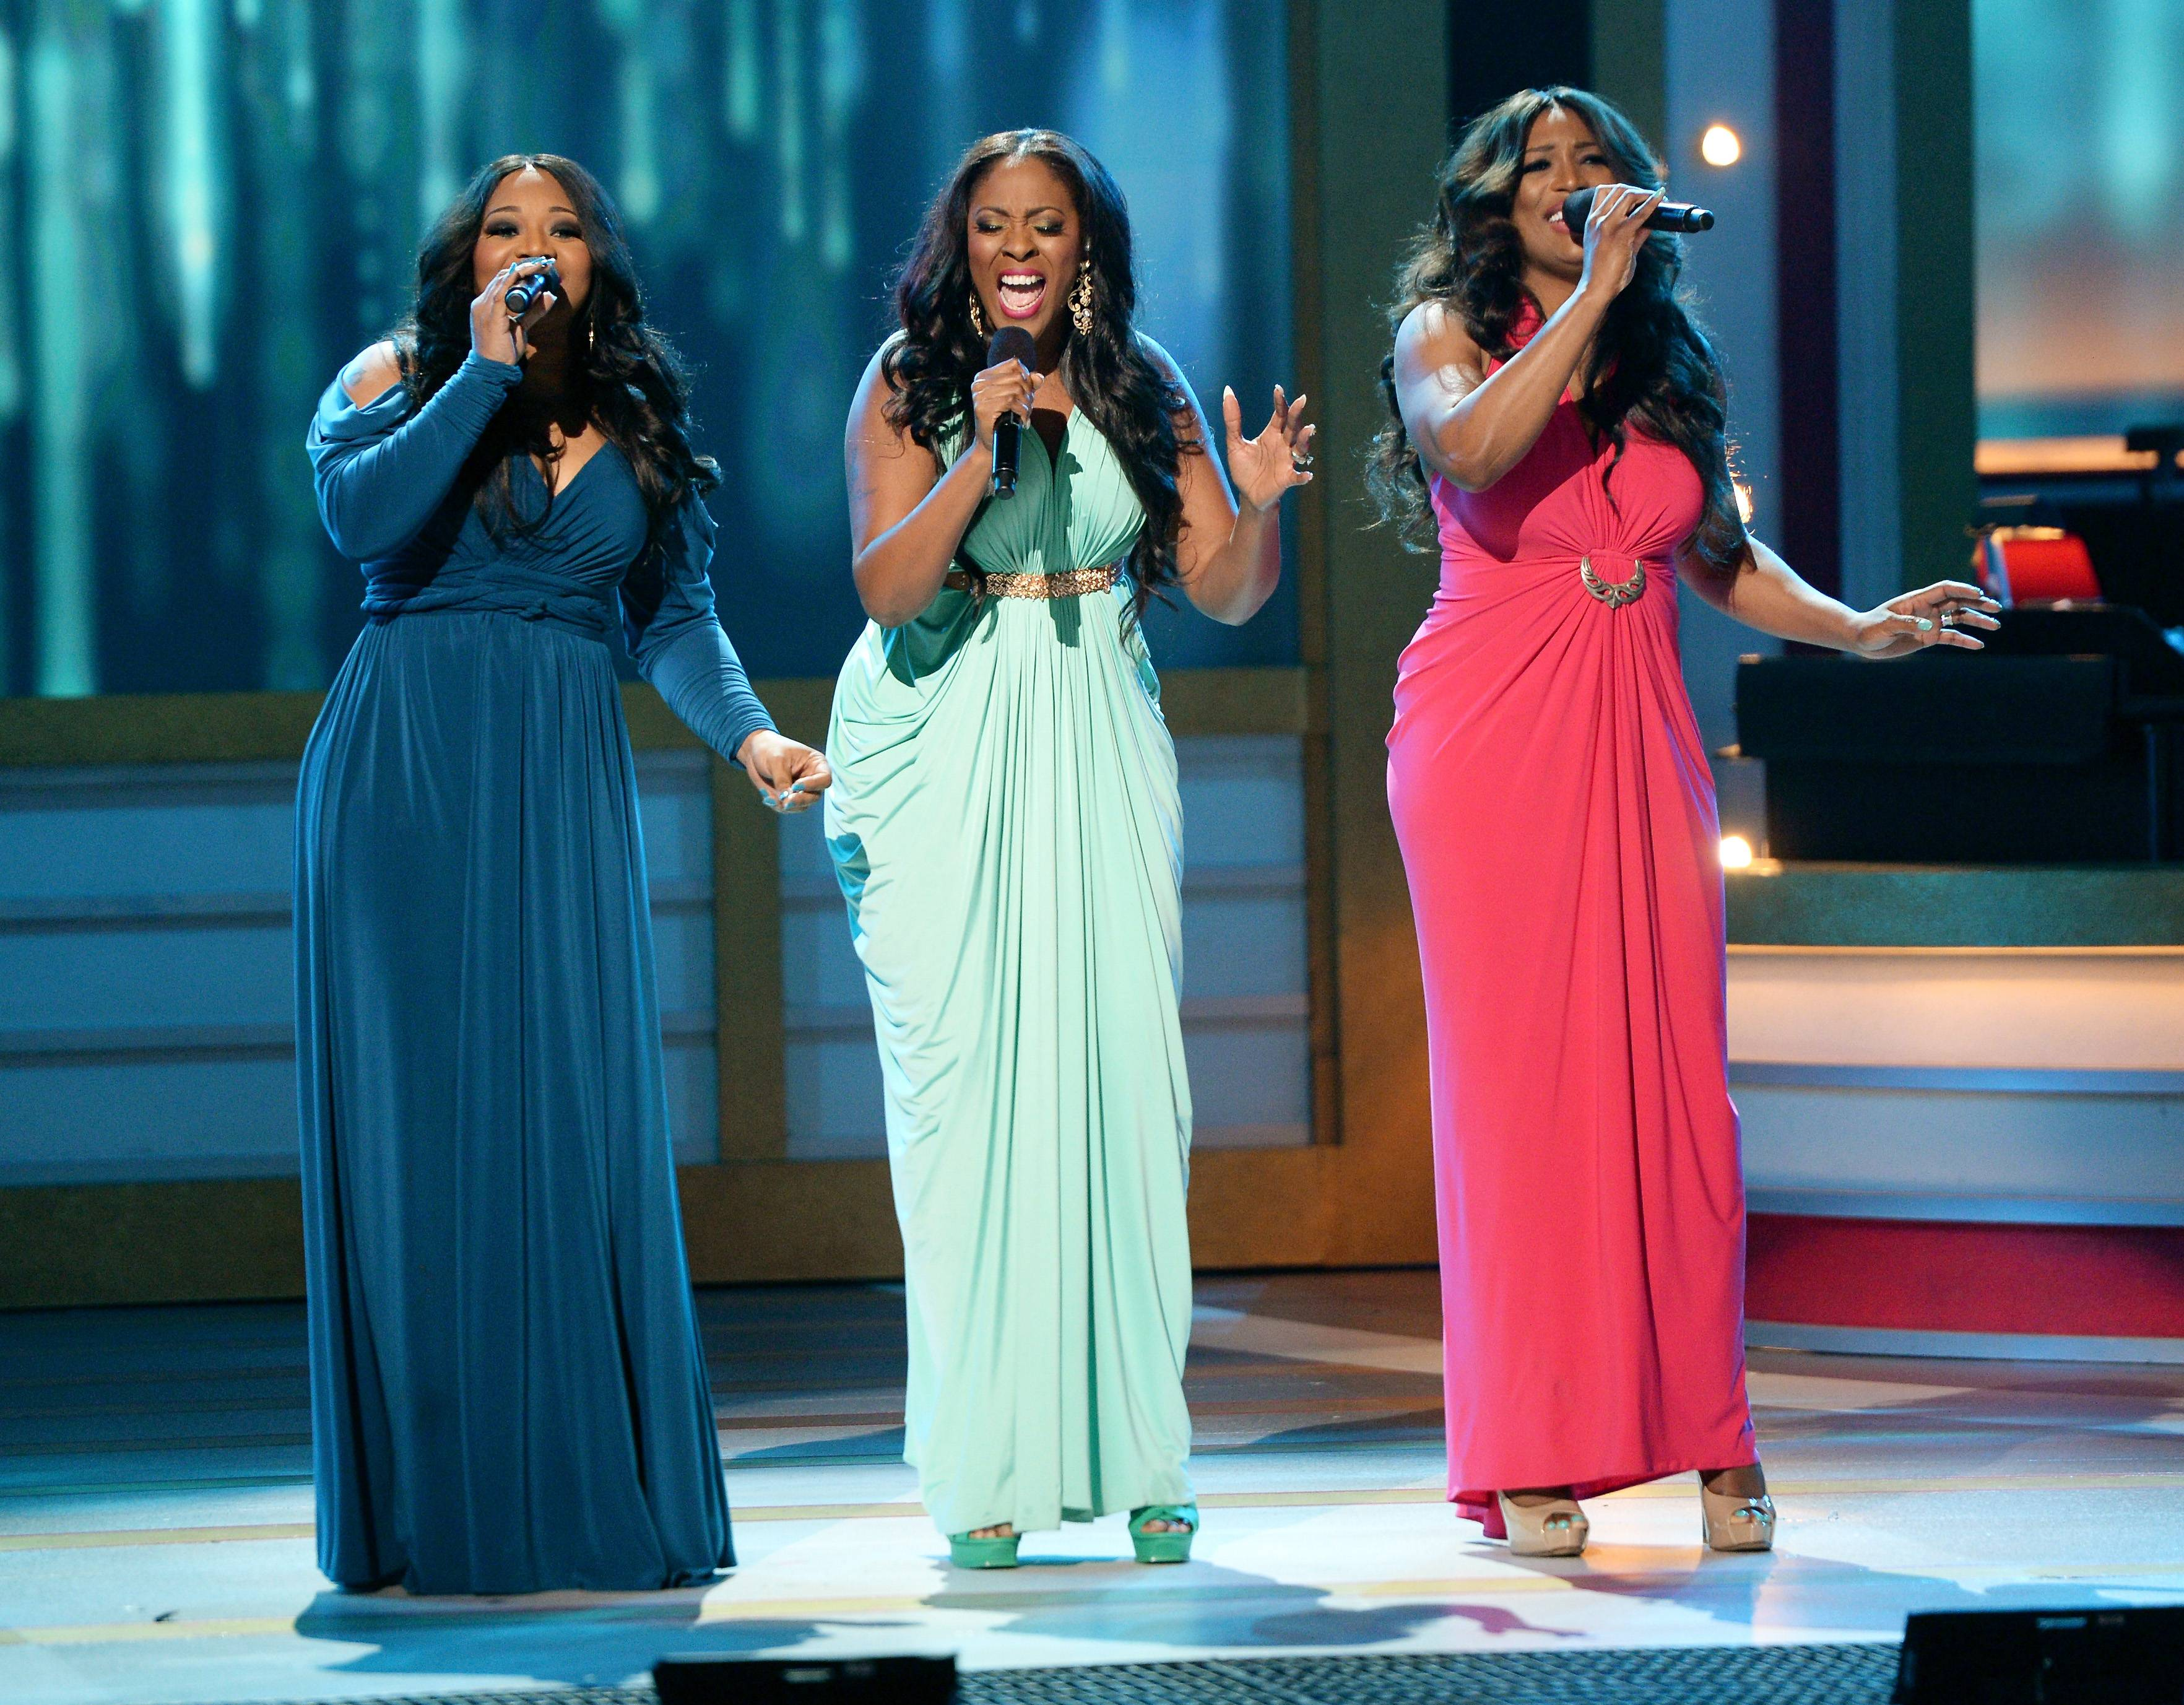 Church Trained Trio - SWV dominated the charts in the '90s and their performance at Celebration of Gospel served as a reminder as to why the church trained vocalists made a major mark in music.(Photo: Jason Kempin/Getty Images for BET)